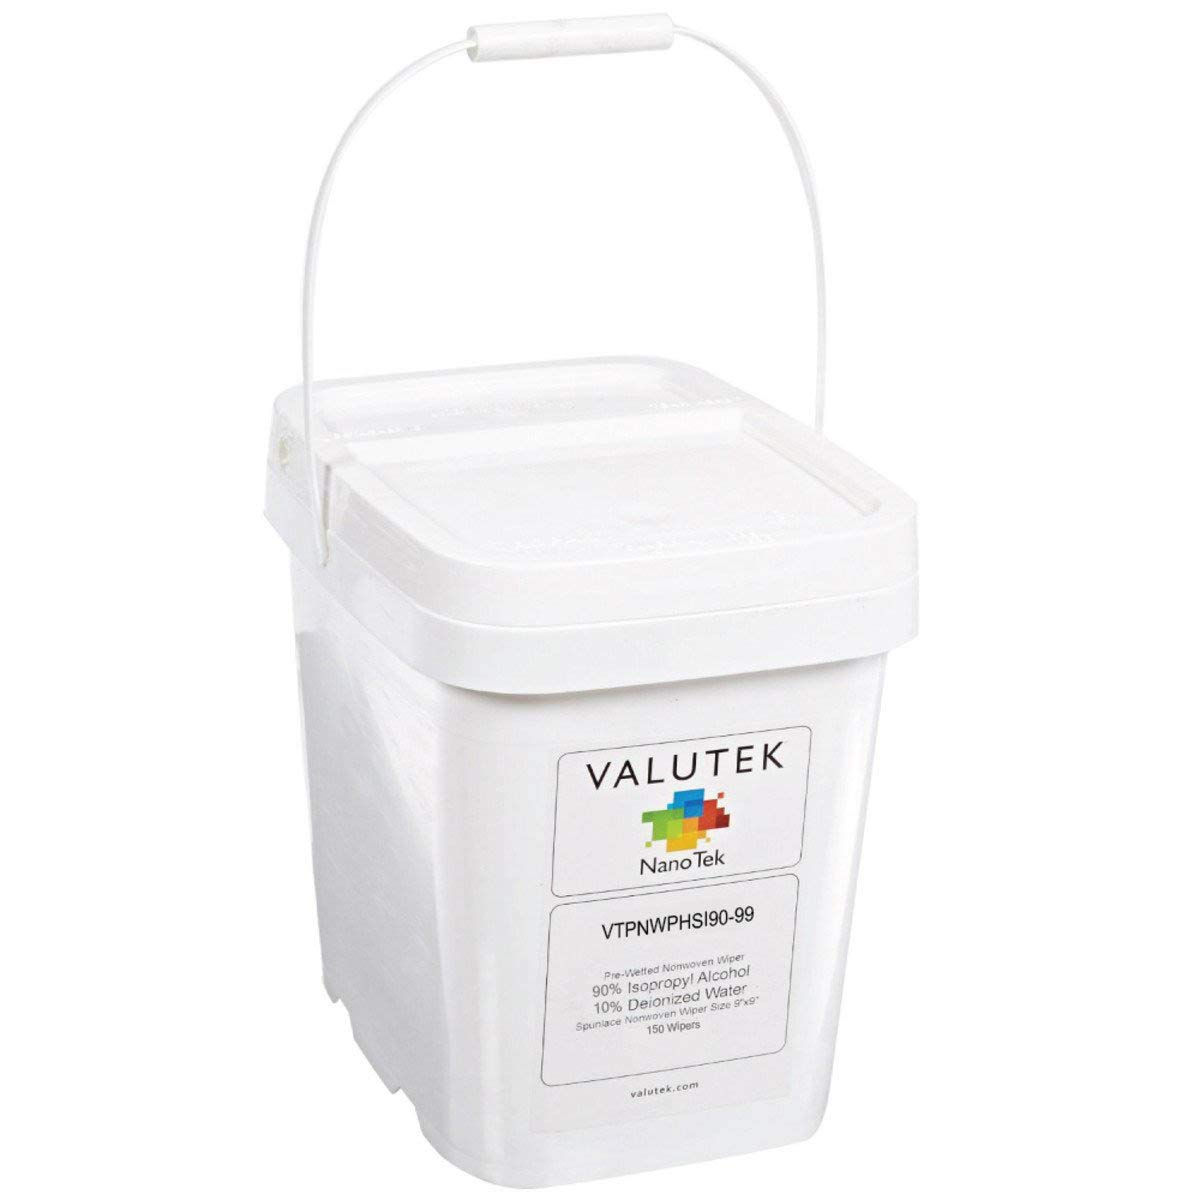 Valutek Pre-Wetted Polyester Wiper [90% Isopropyl Alcohol, 10% Deionized Water] 9''x9'' (150 Wipers + Pail)